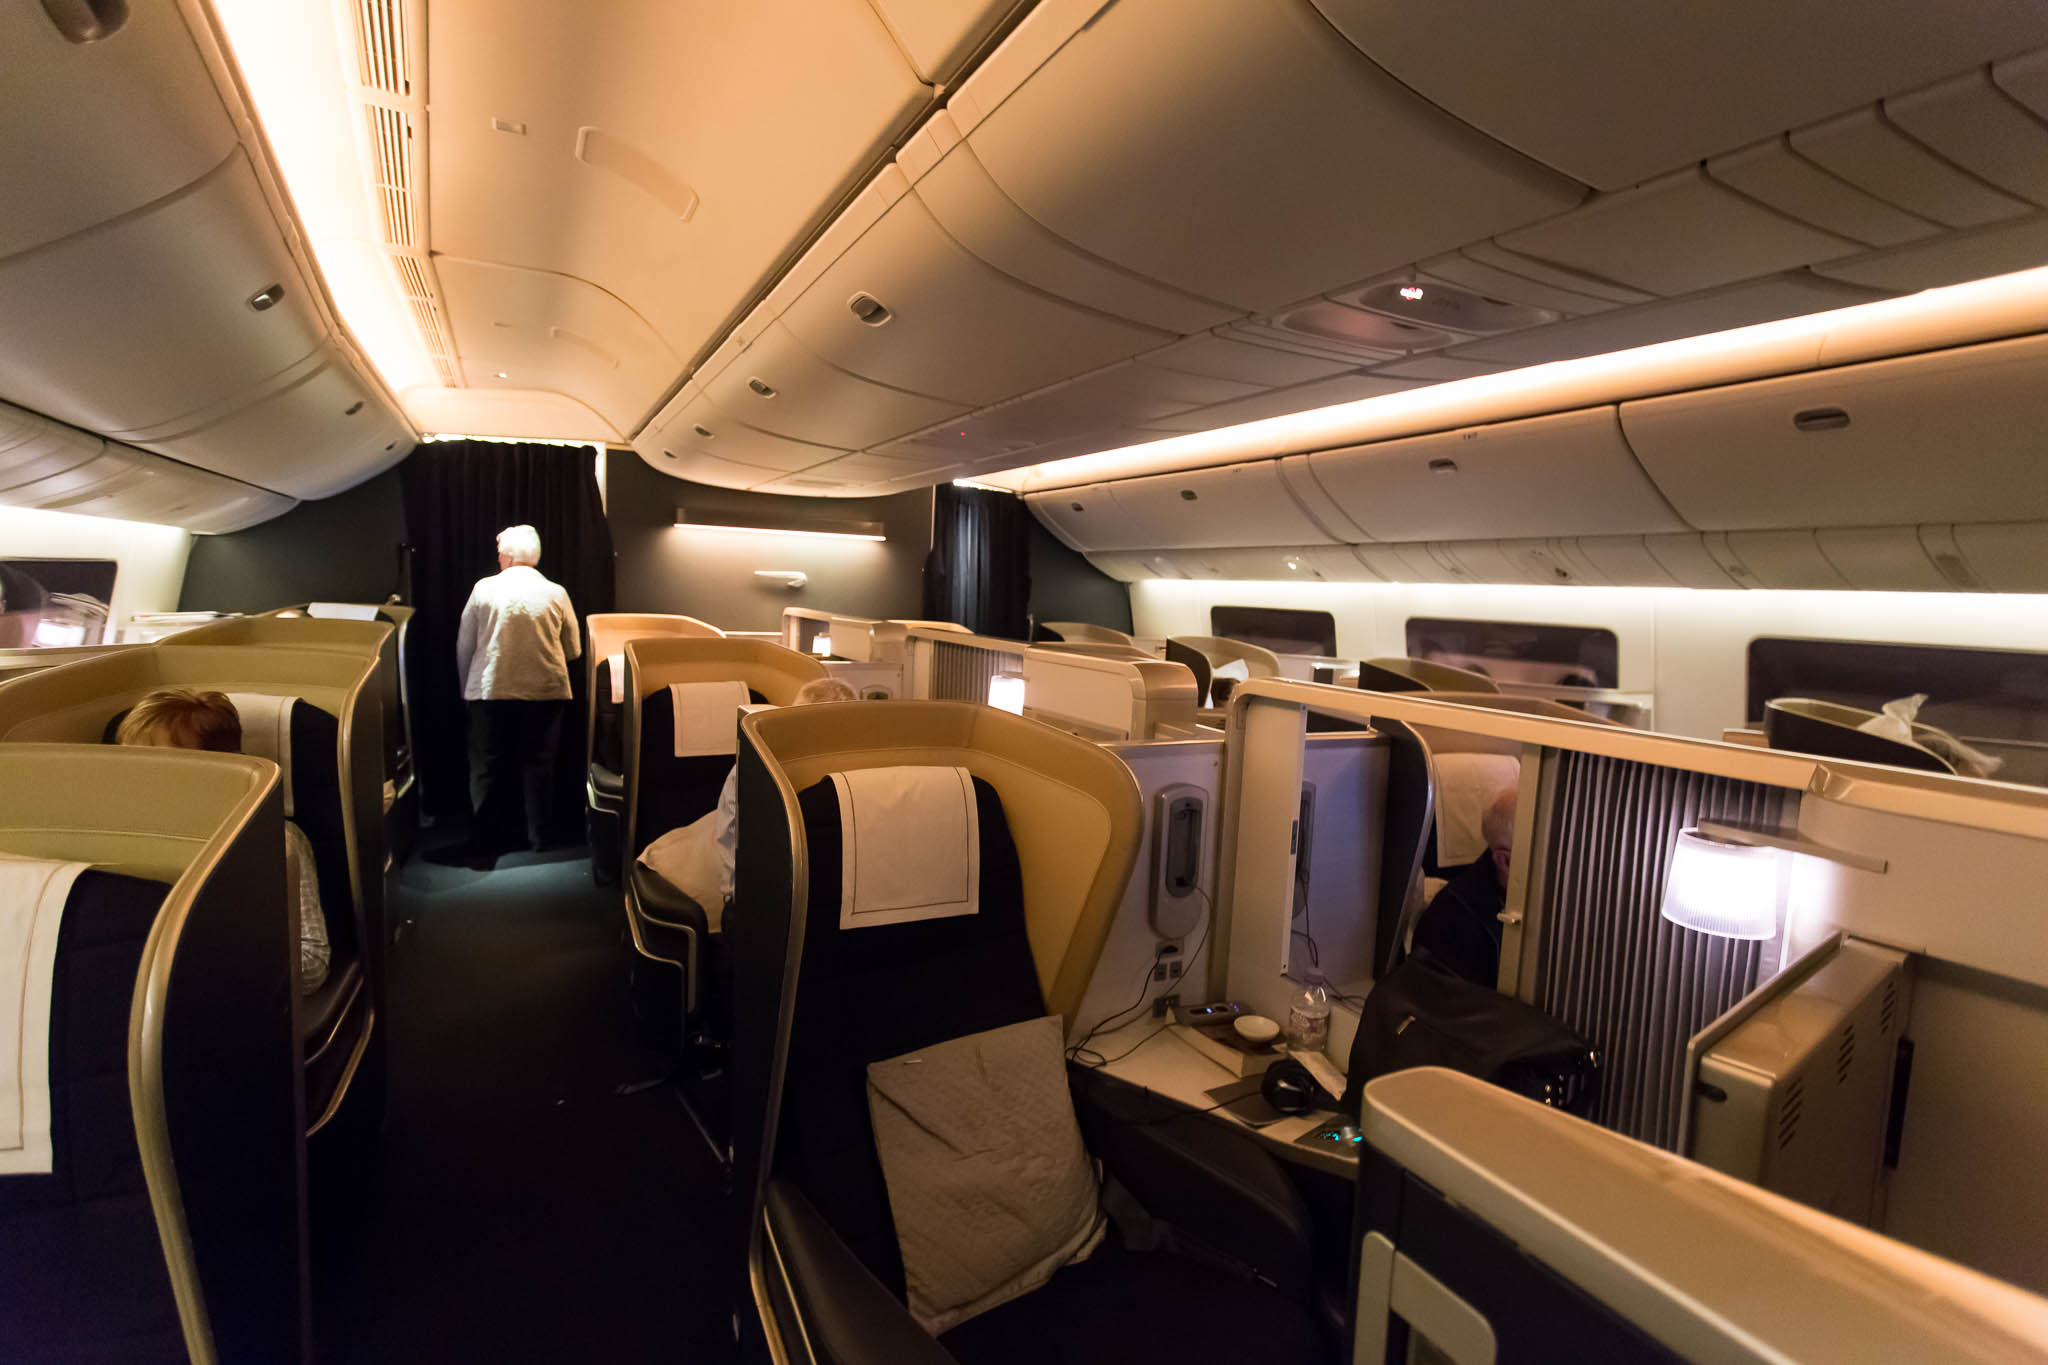 British Airways First Class Cabin